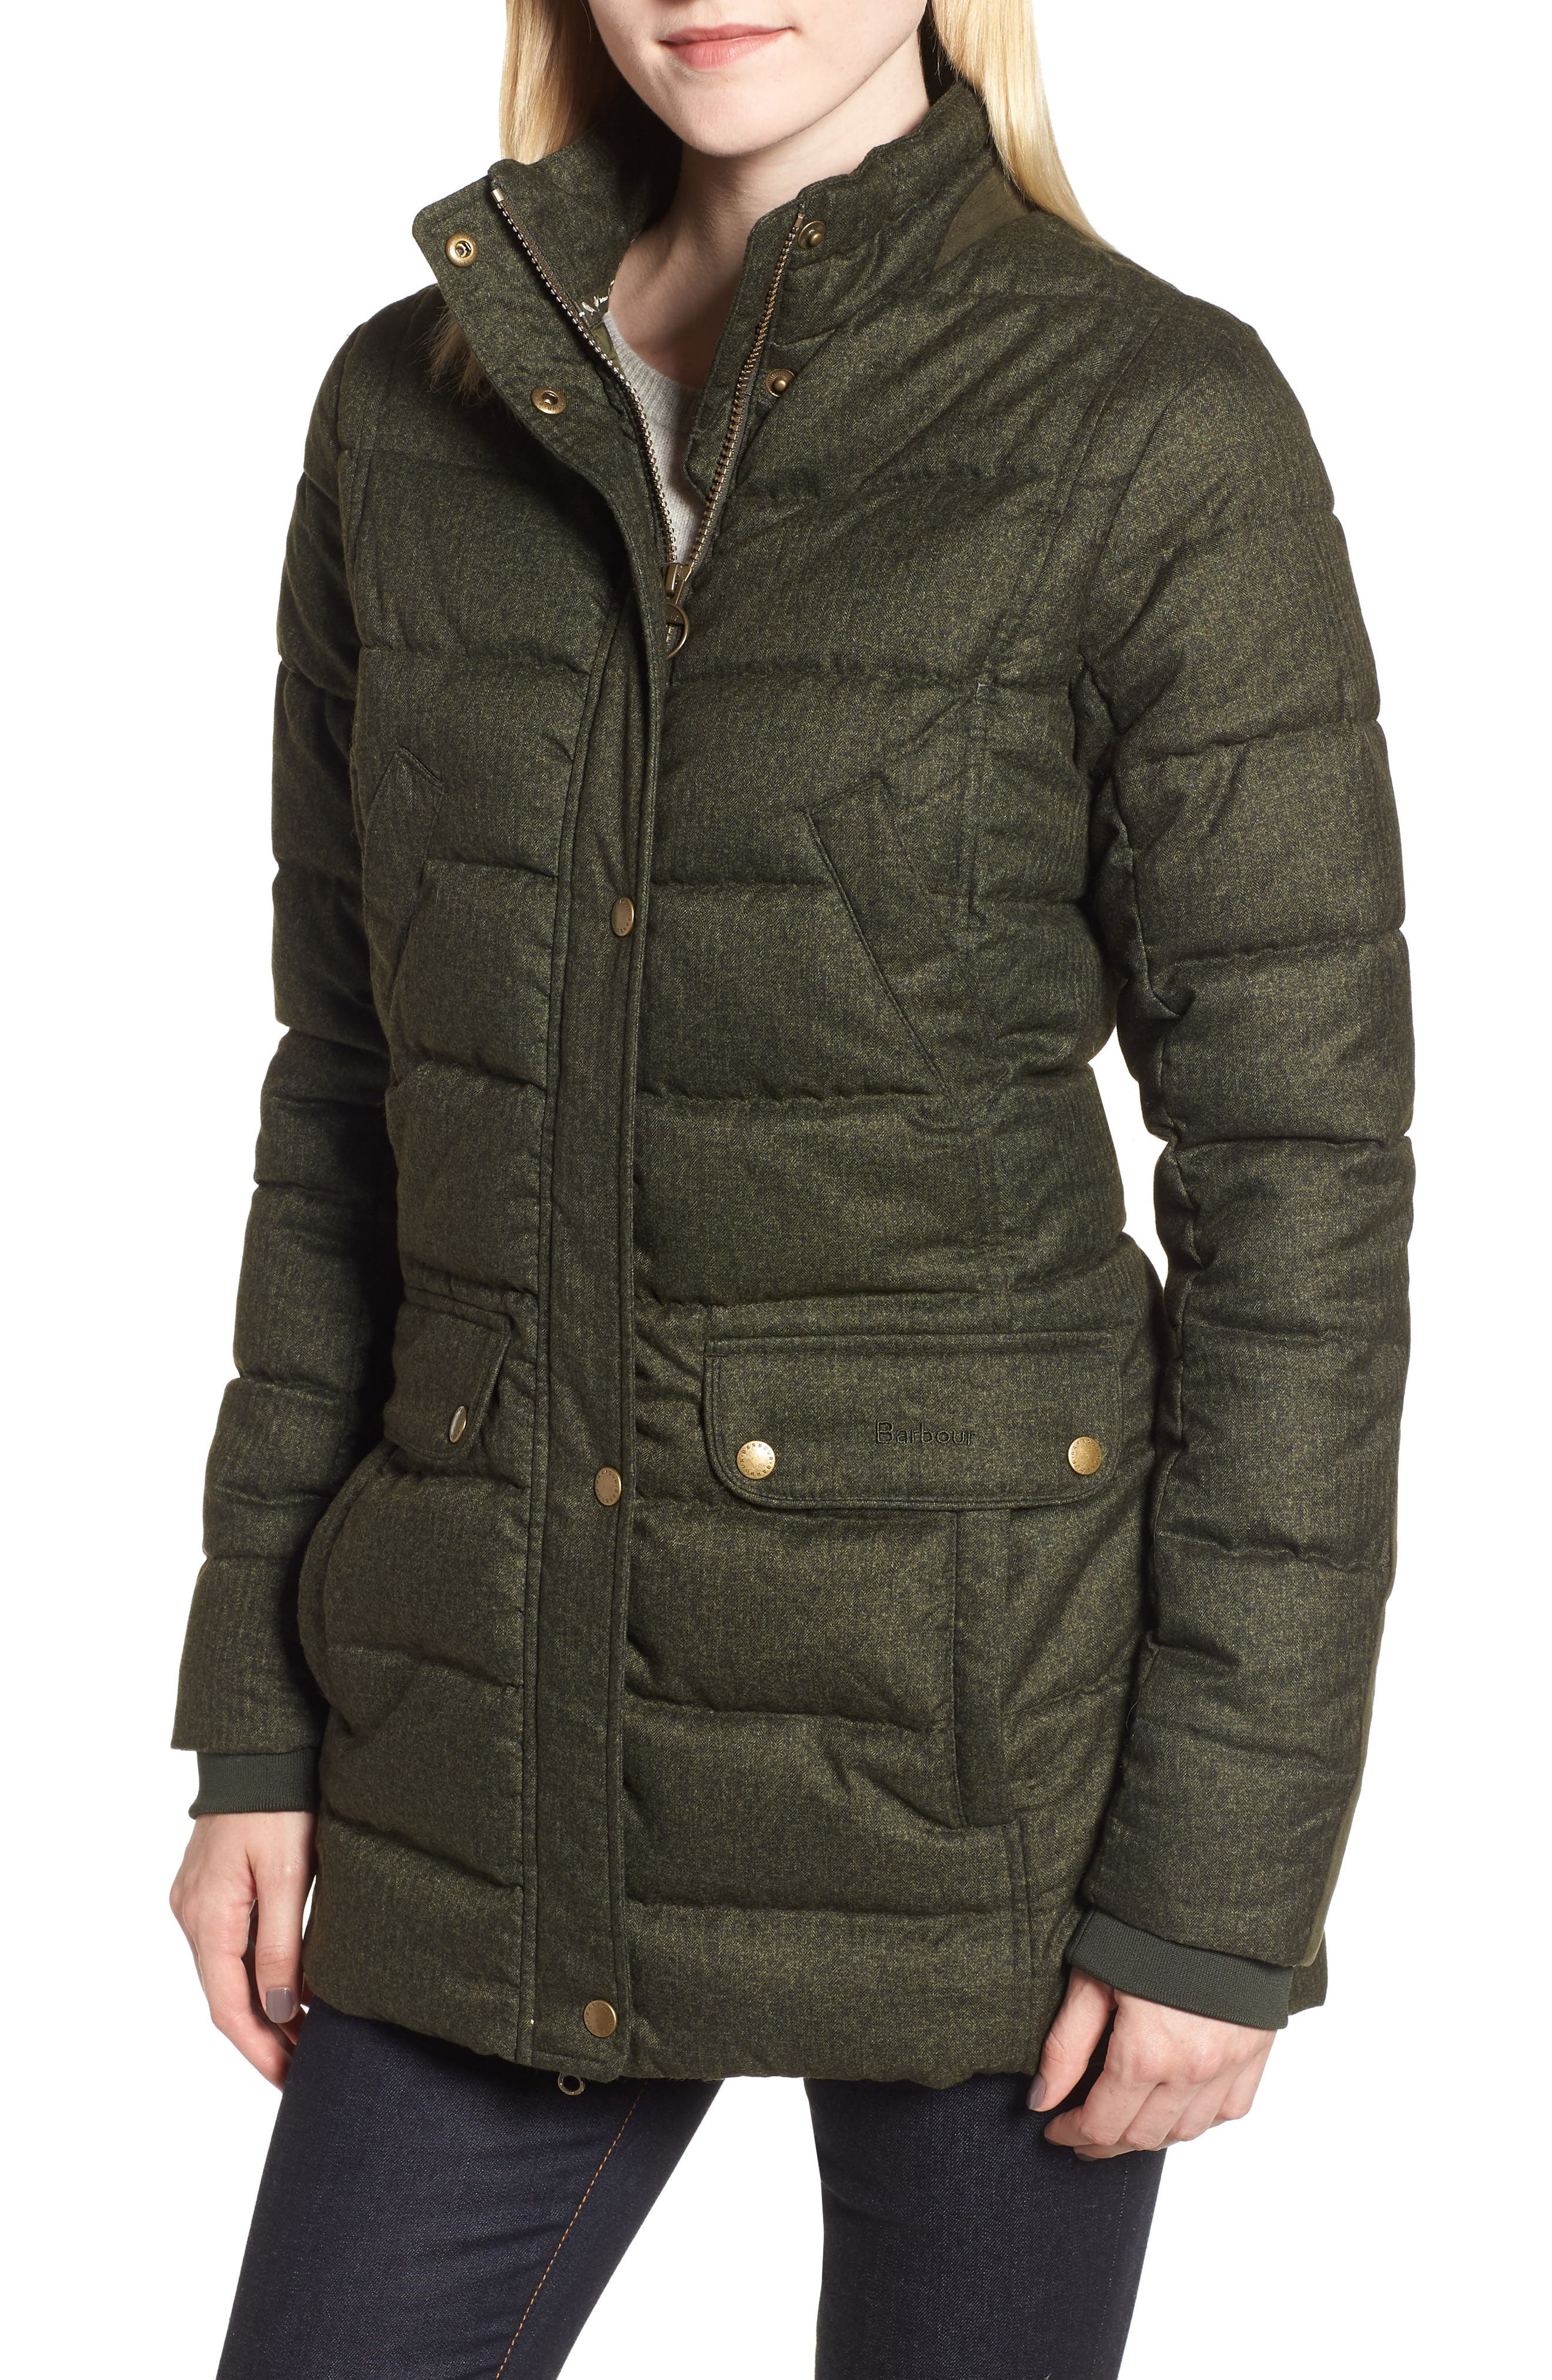 Goldfinch Quilted Jacket,                             Main thumbnail 1, color,                             OLIVE